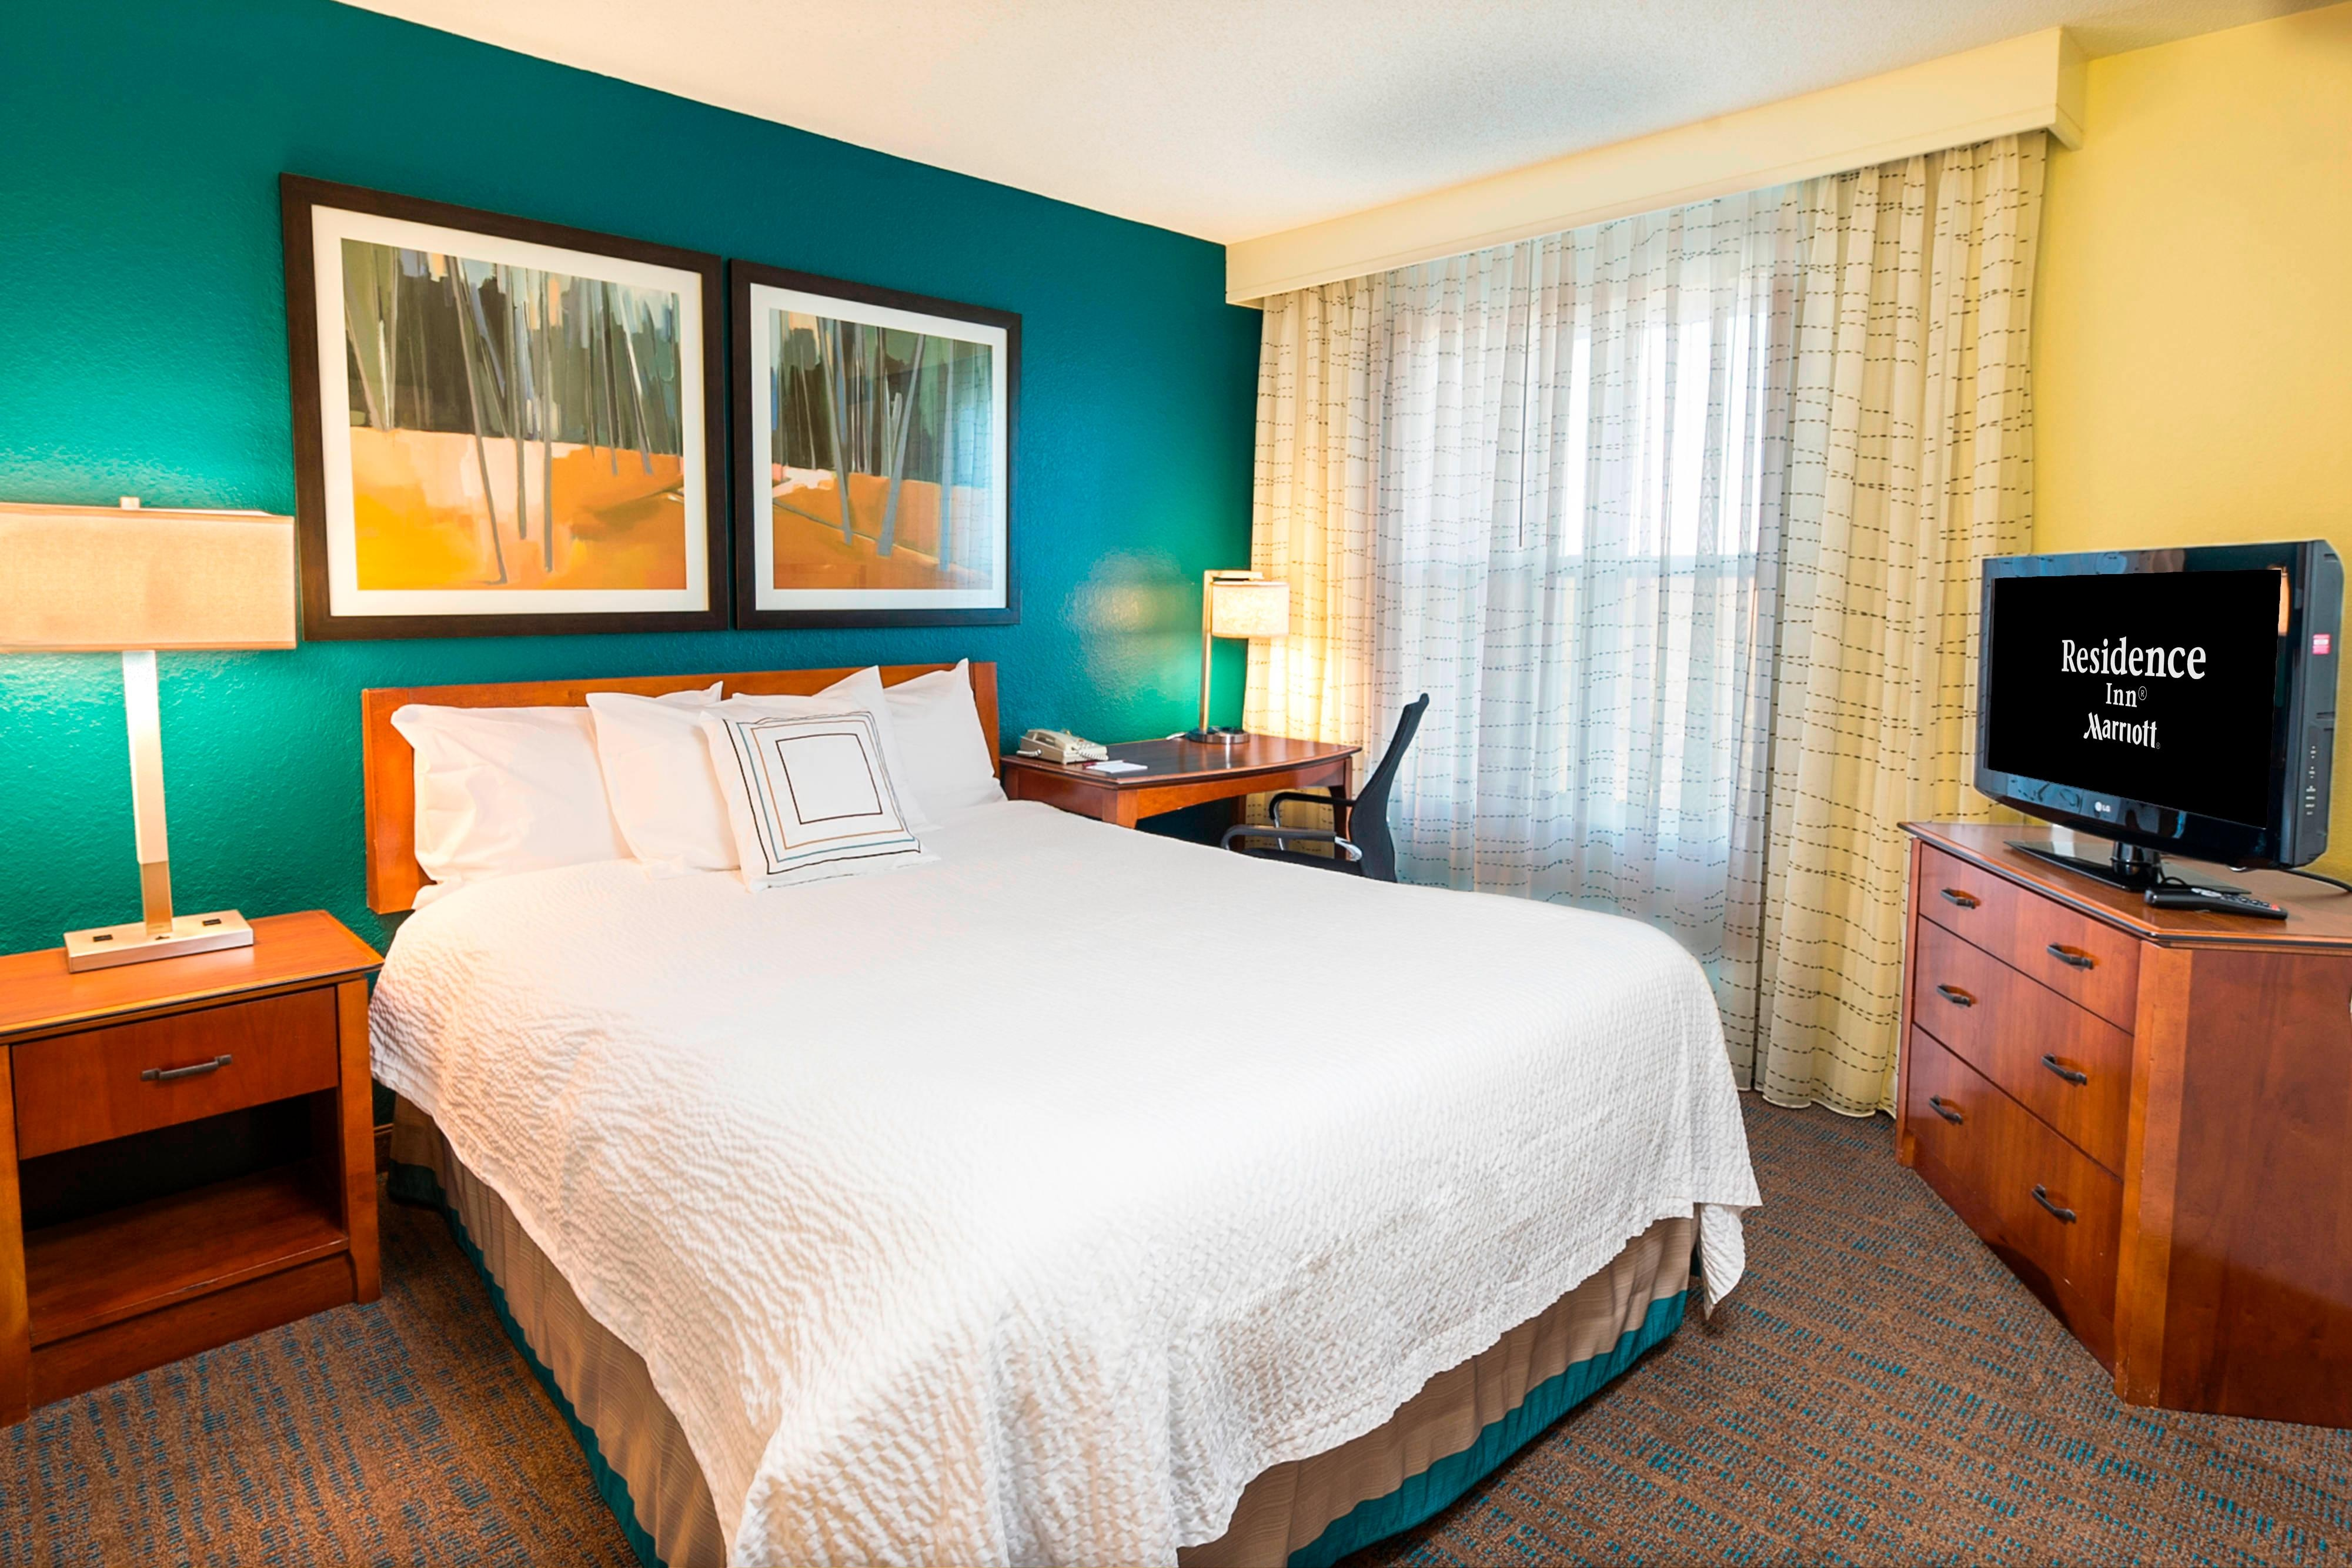 Residence Inn Lakeland two-bedroom